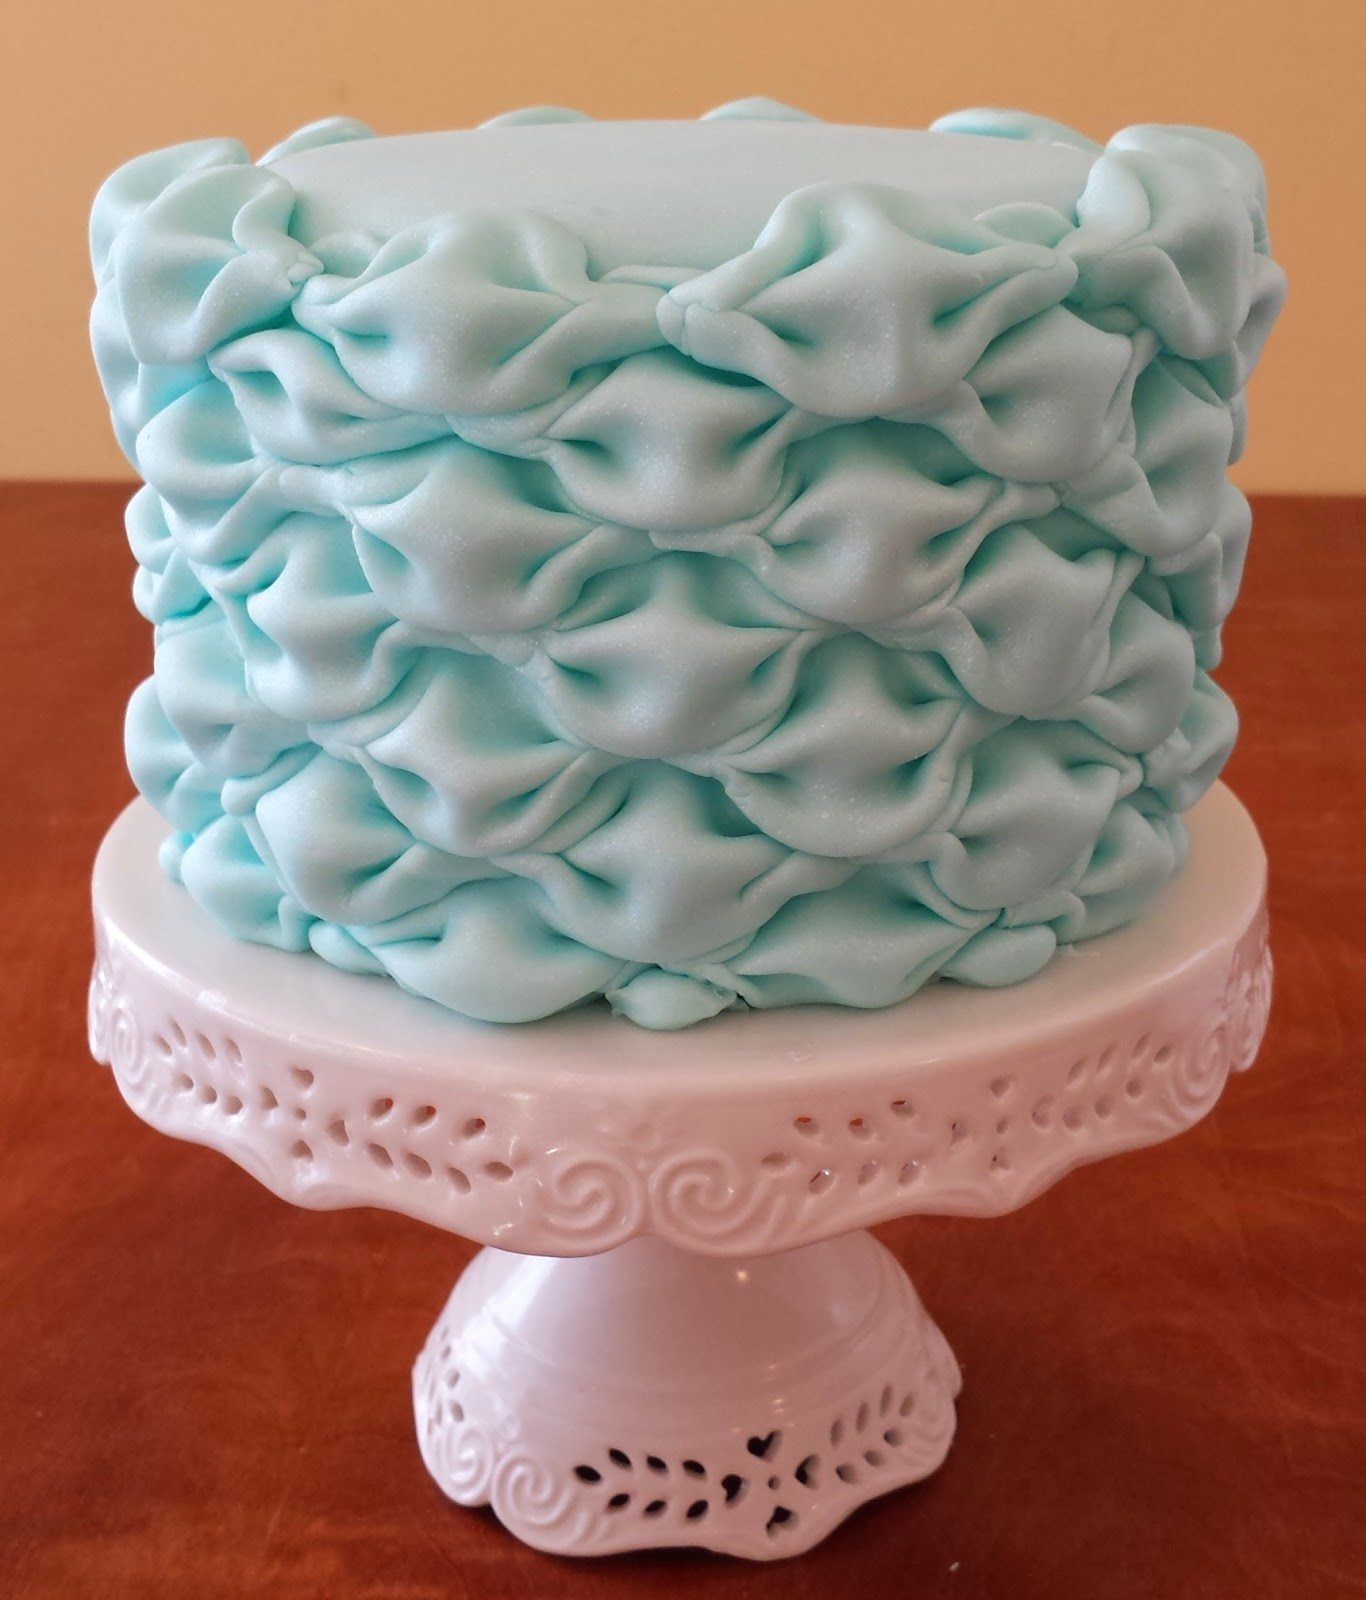 How To Put An Edible Image On A Fondant Cake